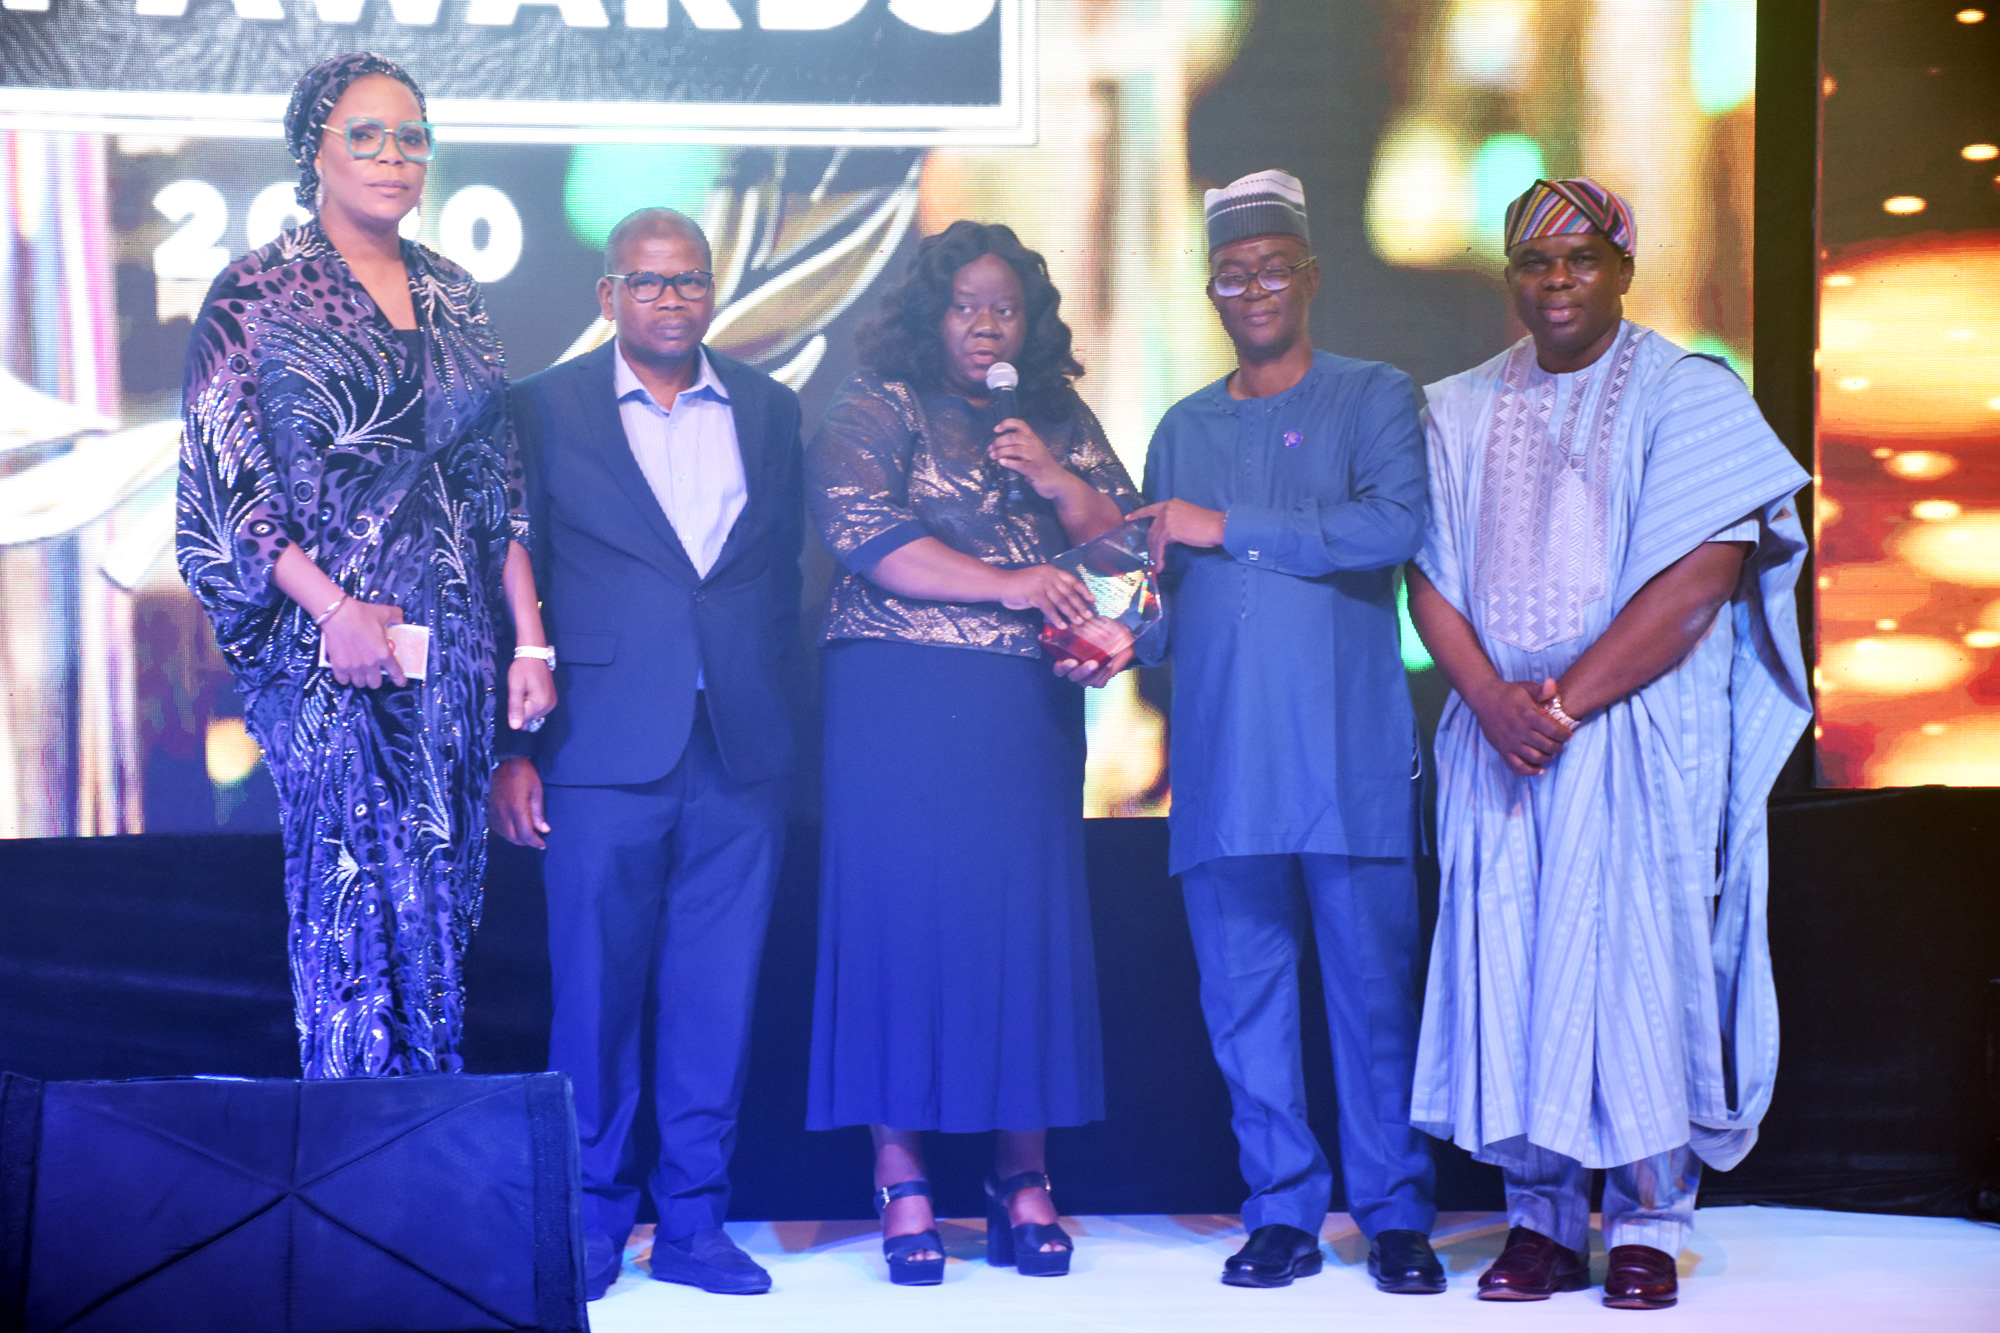 L-R: Mrs. Yetunde Adenaiya, Head, Human Resources, CSCS Plc; Mr. Johnson Onowugbeda, Corporate Communications, CSCS Plc; Mrs. Onome Komolafe, Divisional Head, Shared Services, CSCS Plc; Mr. Magnus Nnoka, President, Risk Management Association of Nigeria (RIMAN) & Chief Risk Officer, Coronation Merchant Bank; and Dr. Ogor Okiti, Managing Director, BusinessDay Media Limited at the presentation of the awards